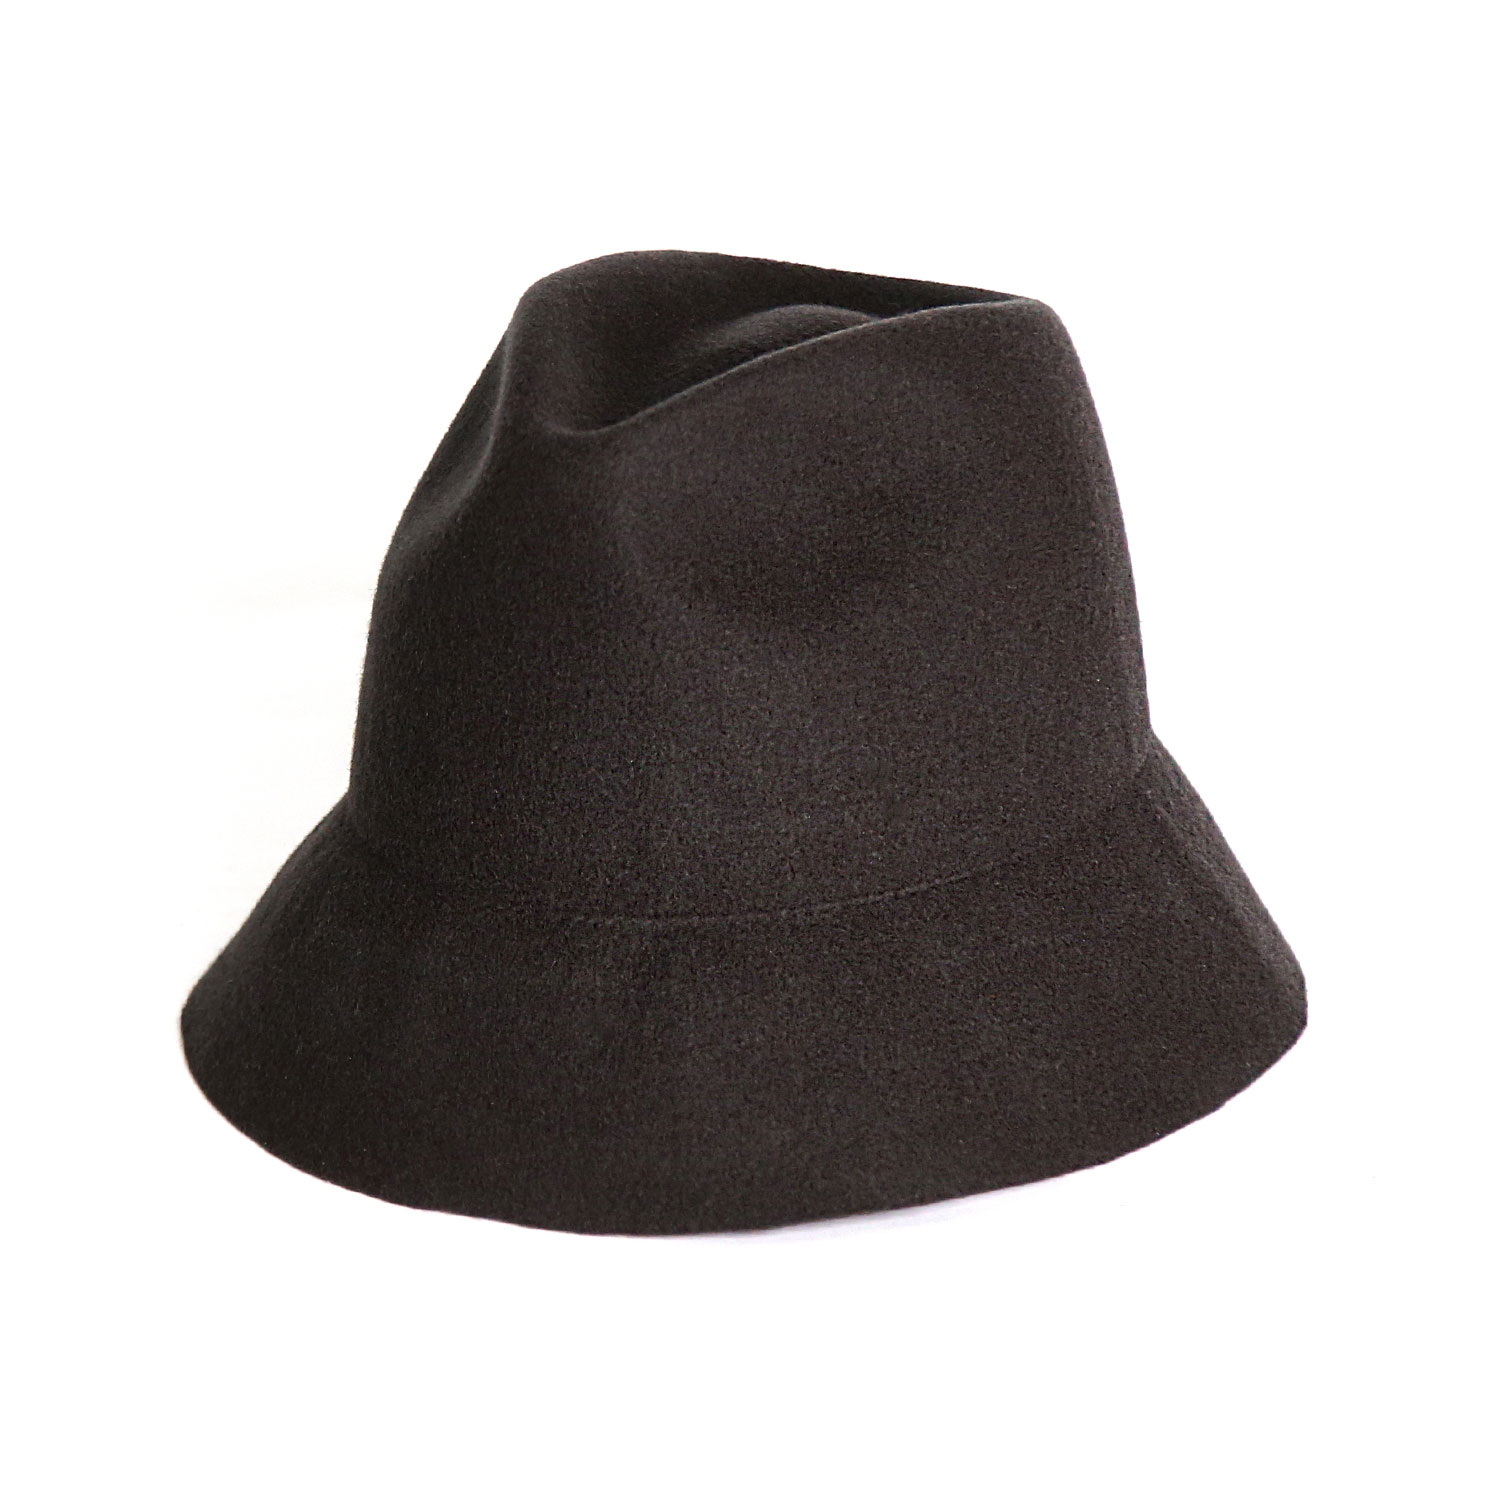 Soft Free Brim Felt Hat  - Charcoal